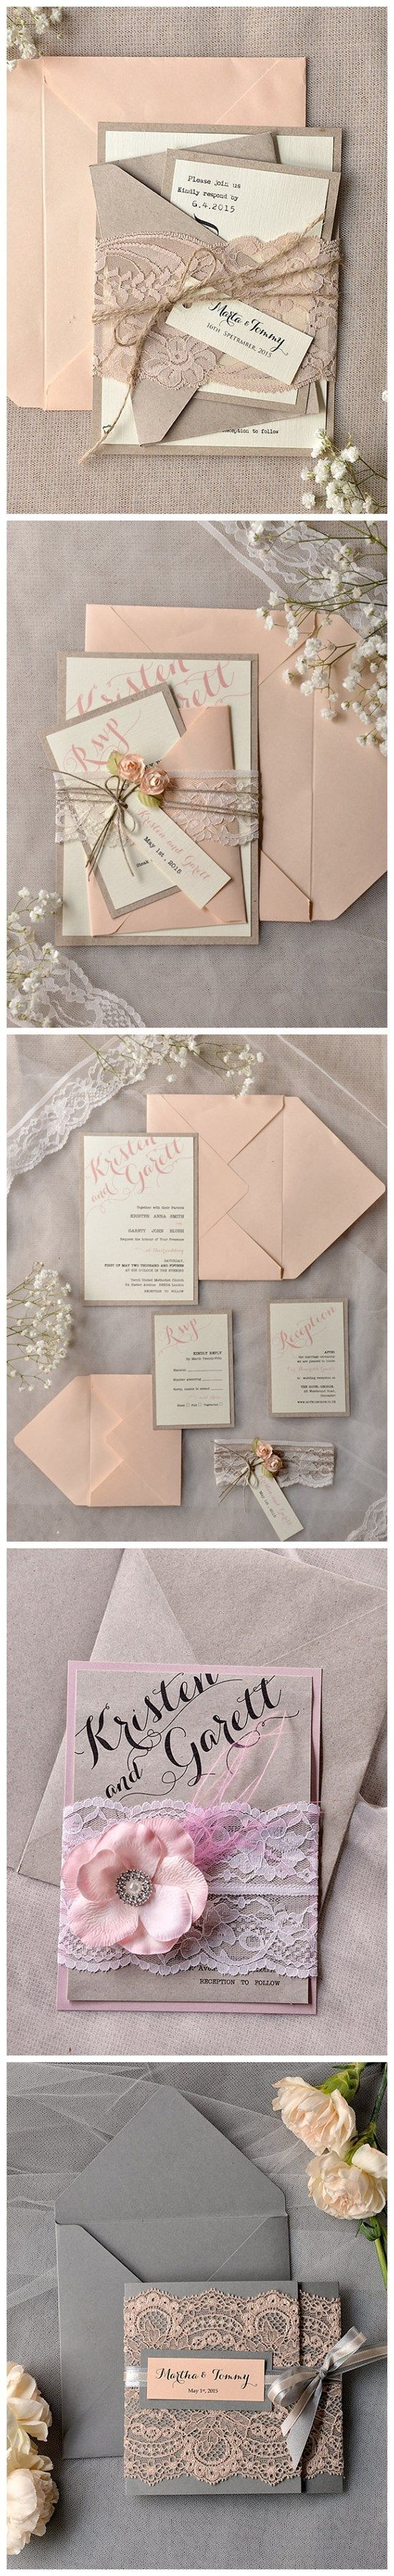 jewelry auctions usa Blush  Pink Rustic Wedding InvitationsVisit  inspirational wedding com for more ideas